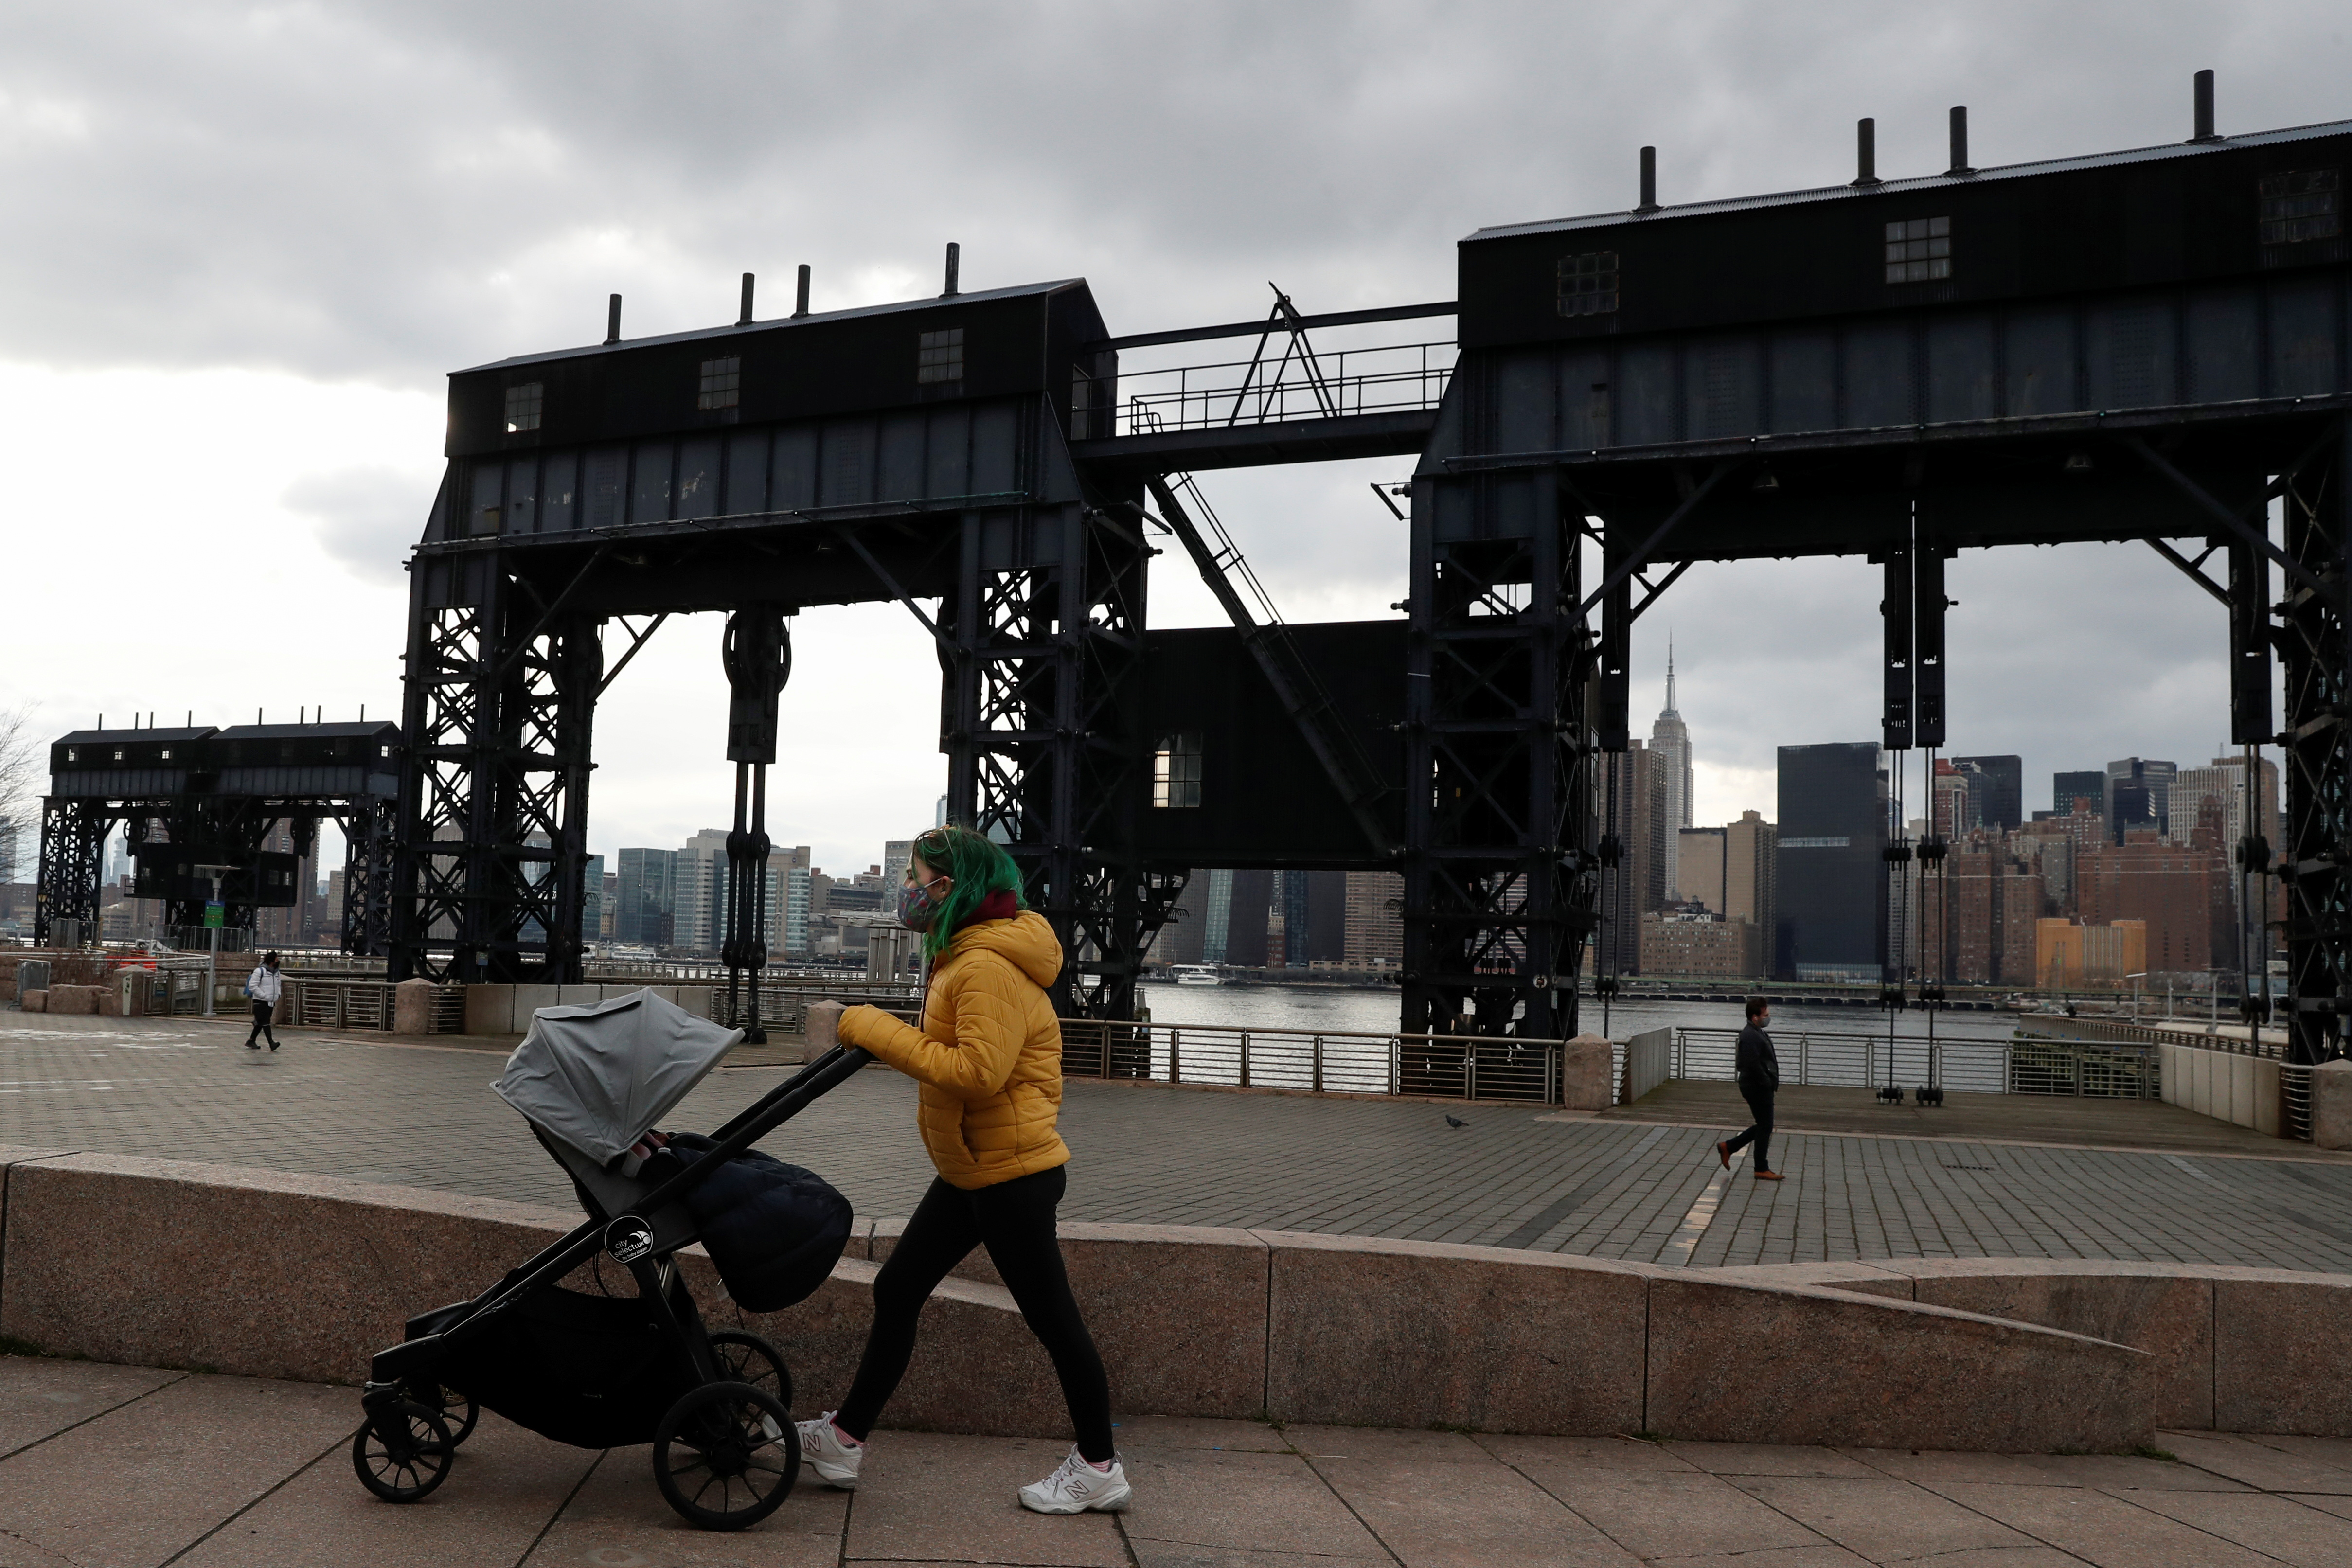 A woman wearing a protective face mask pushes a baby stroller, amid the spread of the coronavirus disease (COVID-19), at Gentry Plaza State Park in the Queens borough of New York, U.S., March 1, 2021. REUTERS/Shannon Stapleton